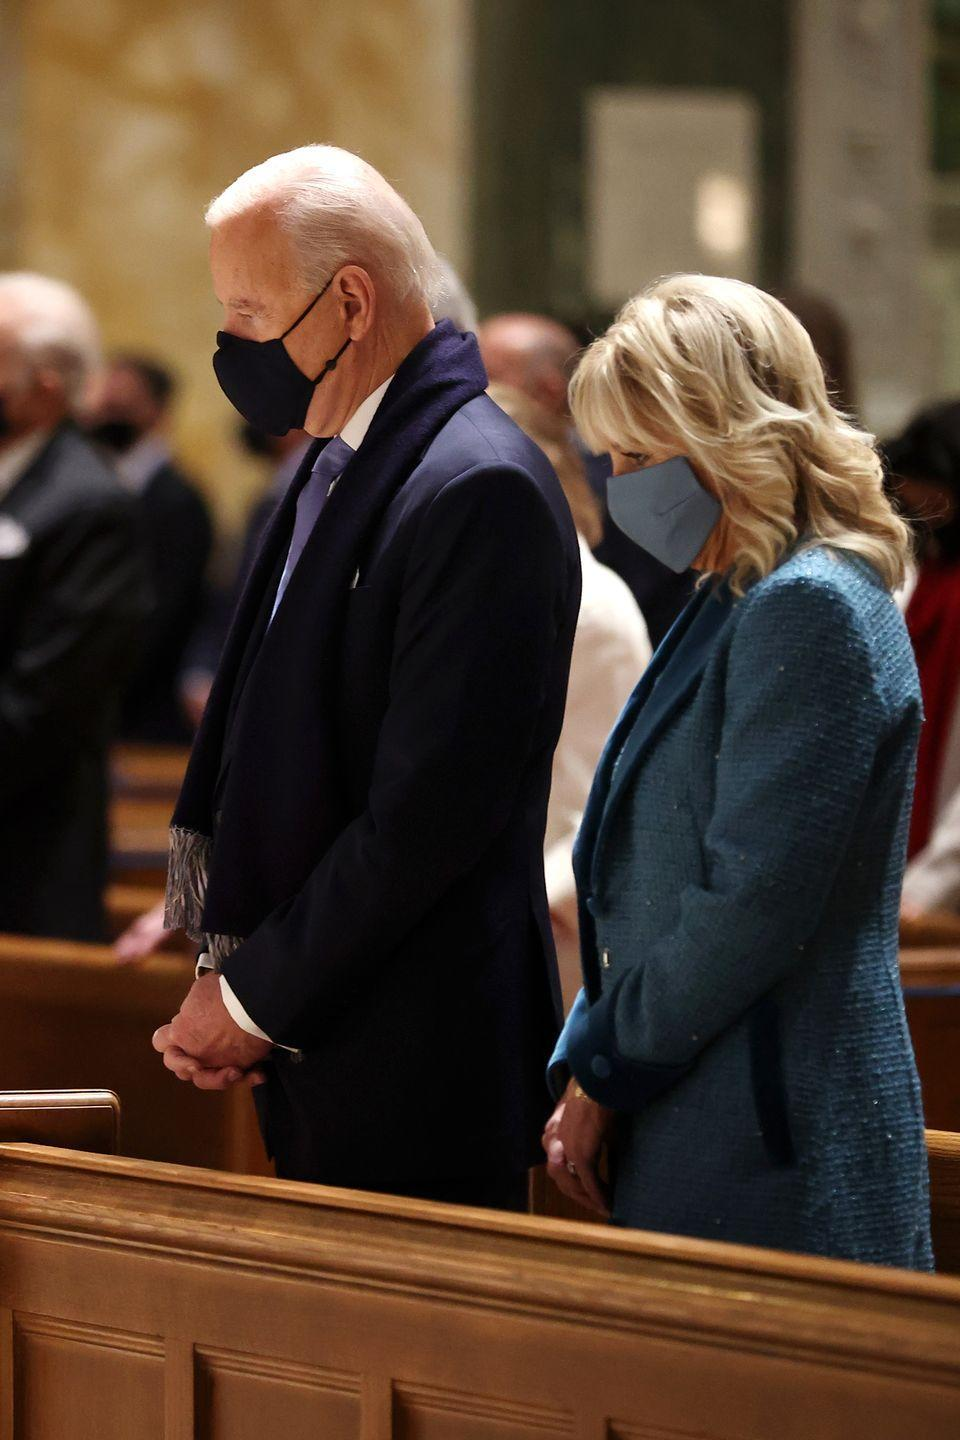 <p>President-elect Joe Biden and Dr. Jill Biden attend services at the Cathedral of St. Matthew the Apostle with congressional leaders prior to the 59th presidential inauguration ceremony in Washington, D.C.</p>